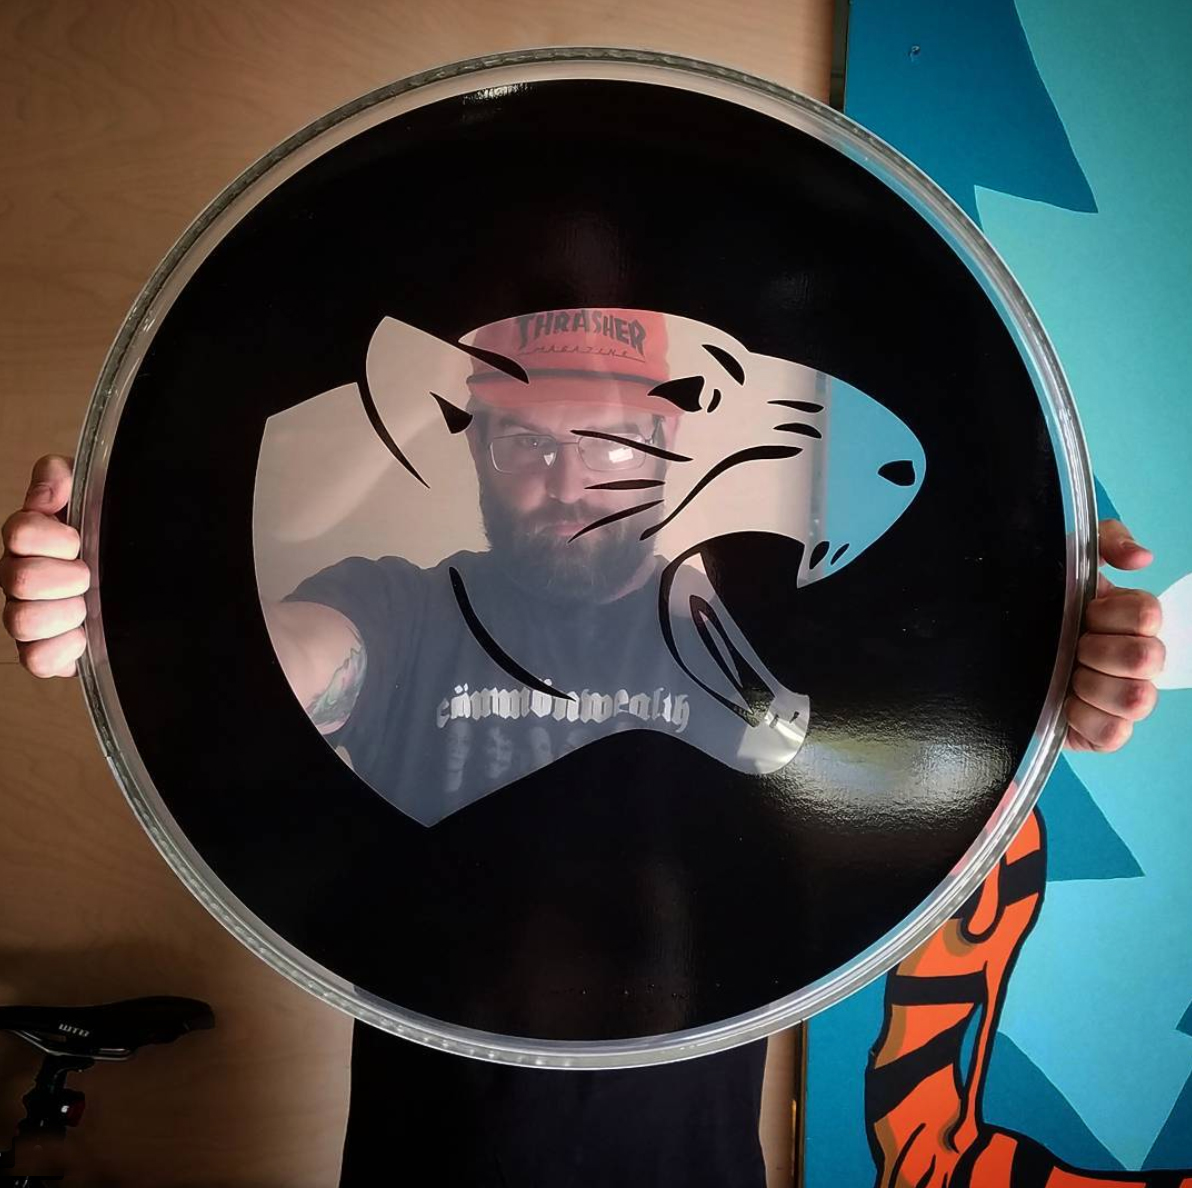 DRUM HEADS - Yup we can do that too.